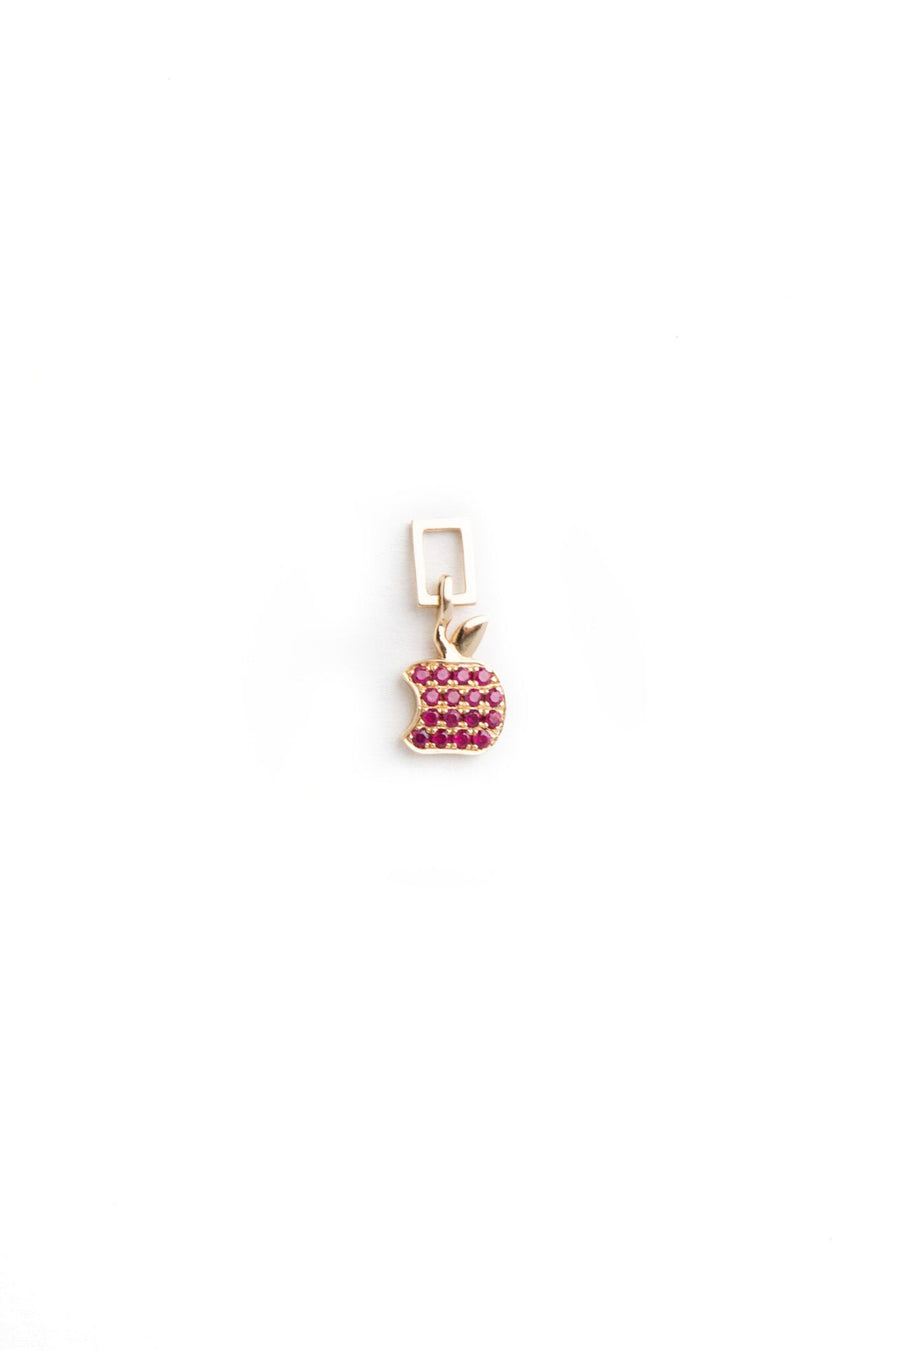 14K Yellow Gold with Rubies Bitten Apple Charm For Hoop Earring